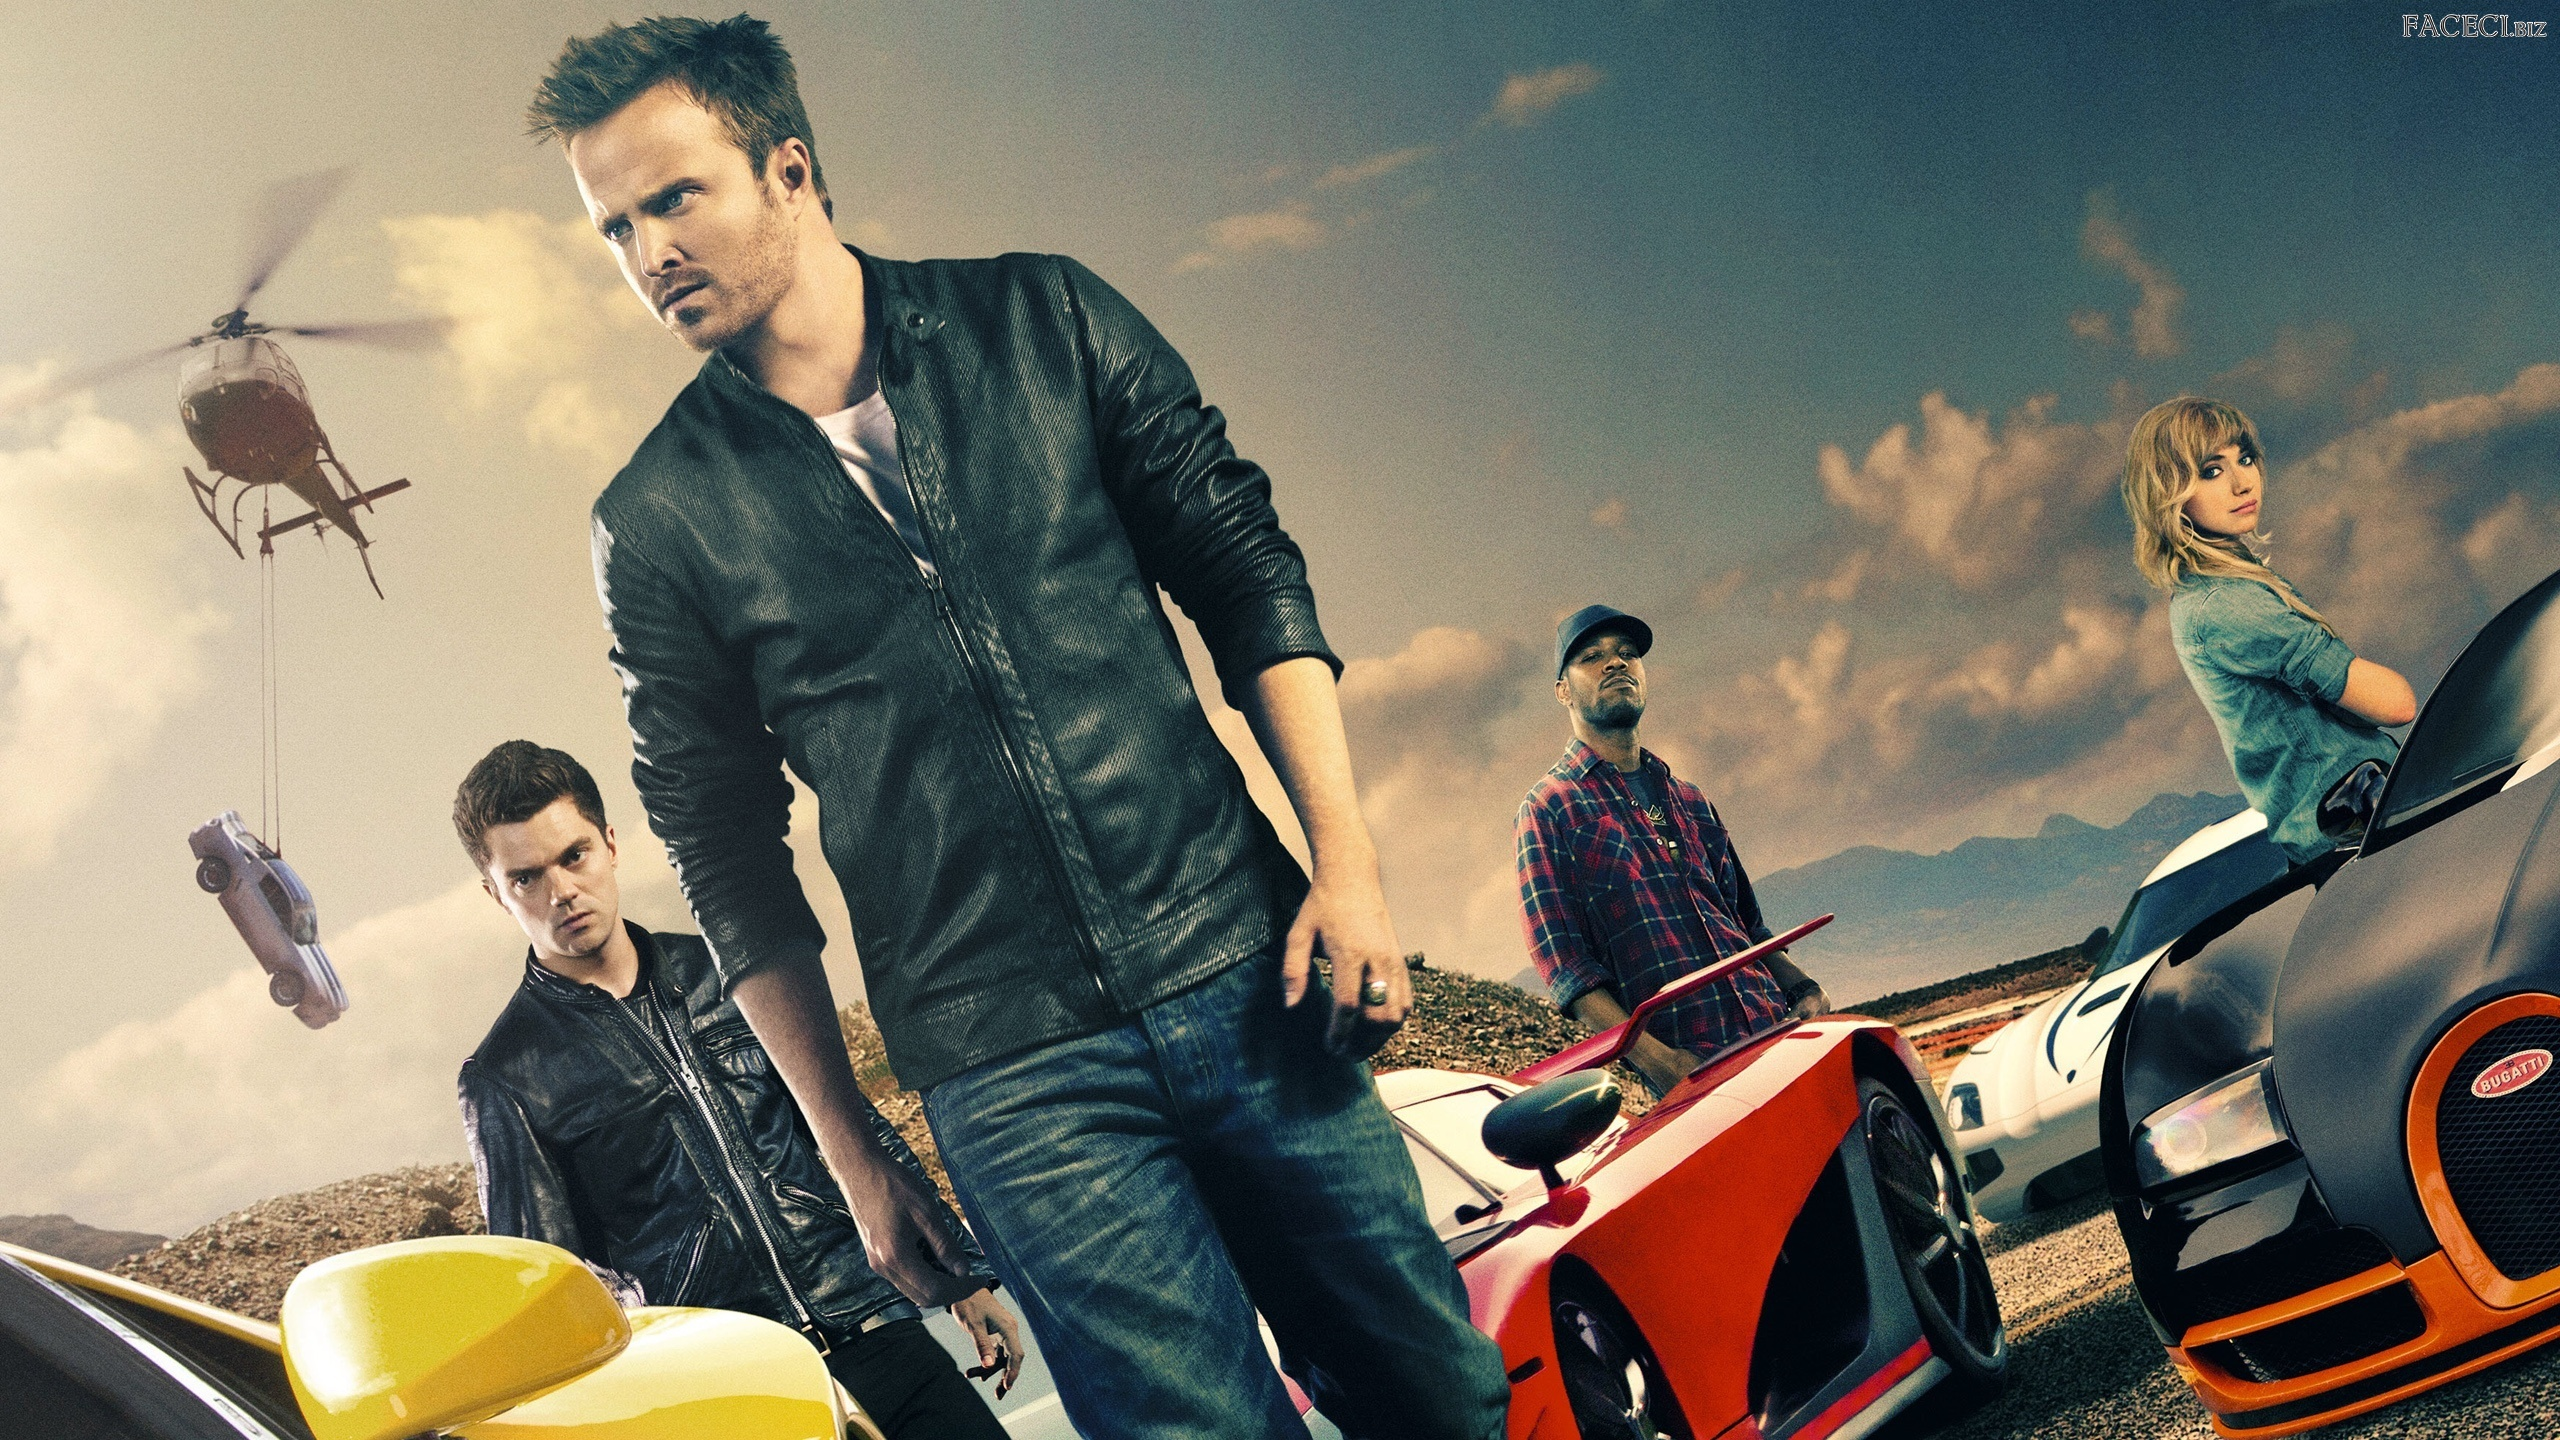 Samochody, Aktor, Film, Postać Tobey Marshall, Helikoptery, Need for Speed, Aaron Paul